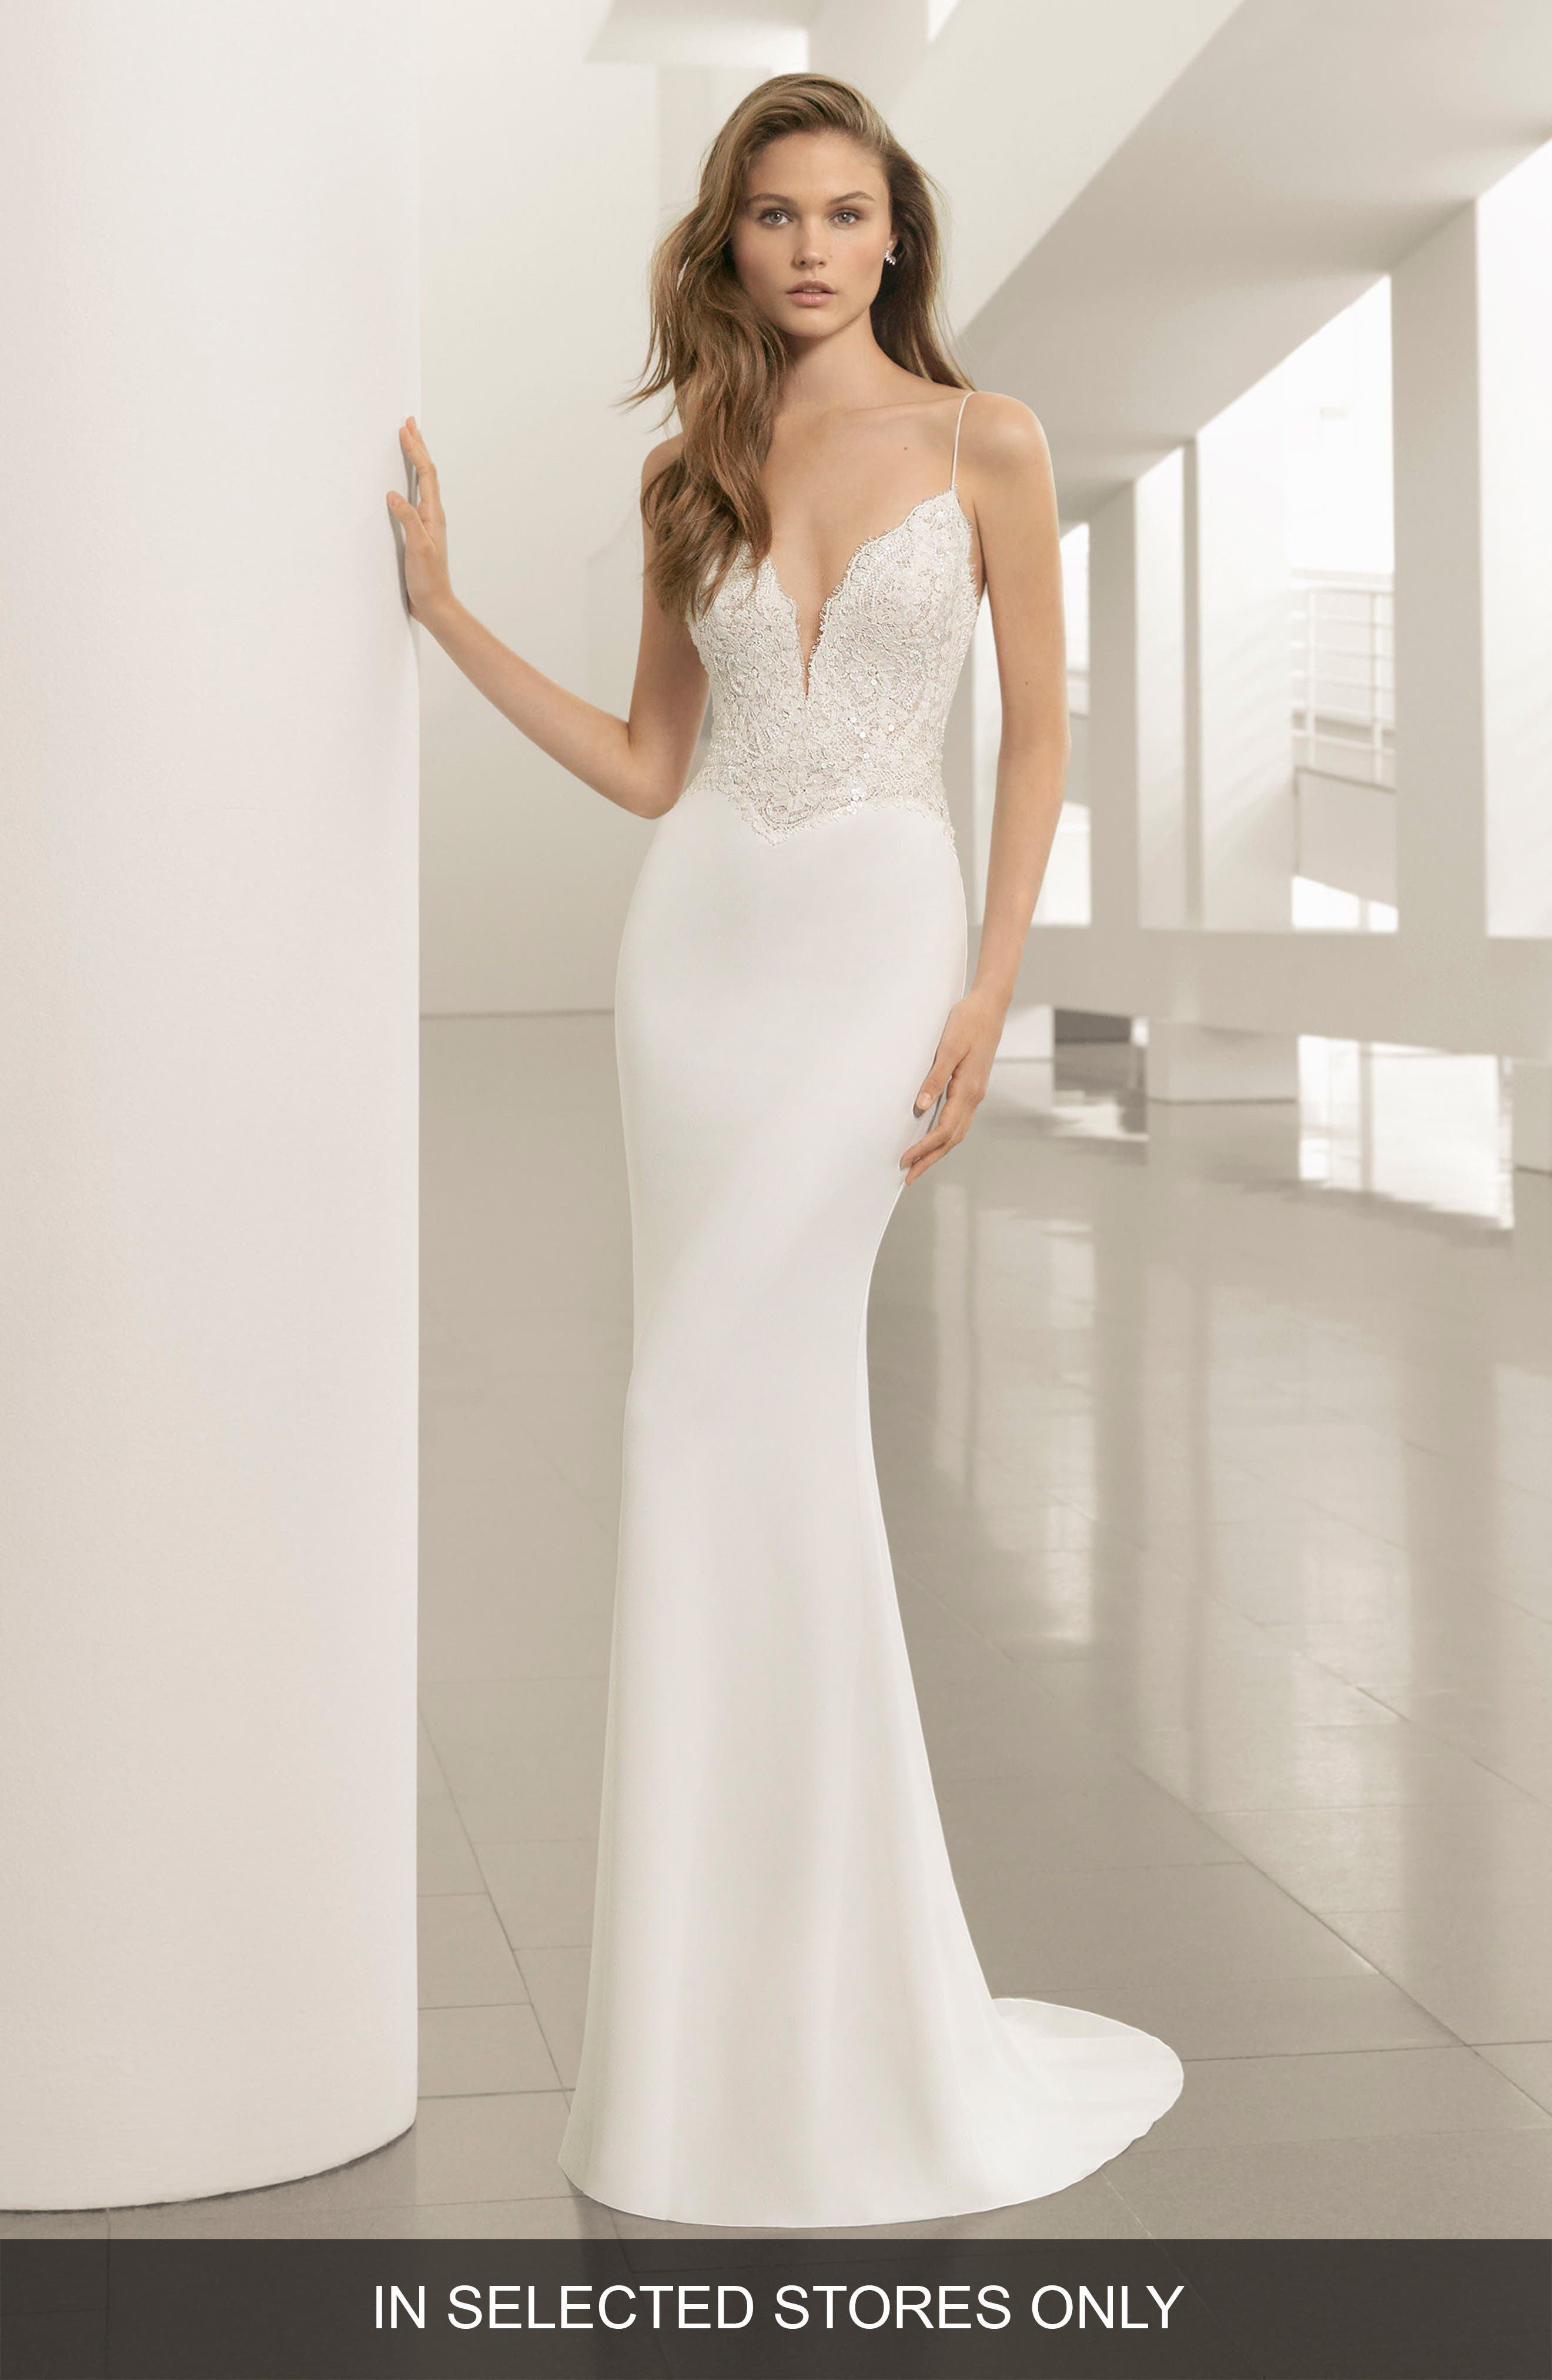 Pravia Lace & Crepe Plunge Gown,                             Main thumbnail 1, color,                             Natural/Nude